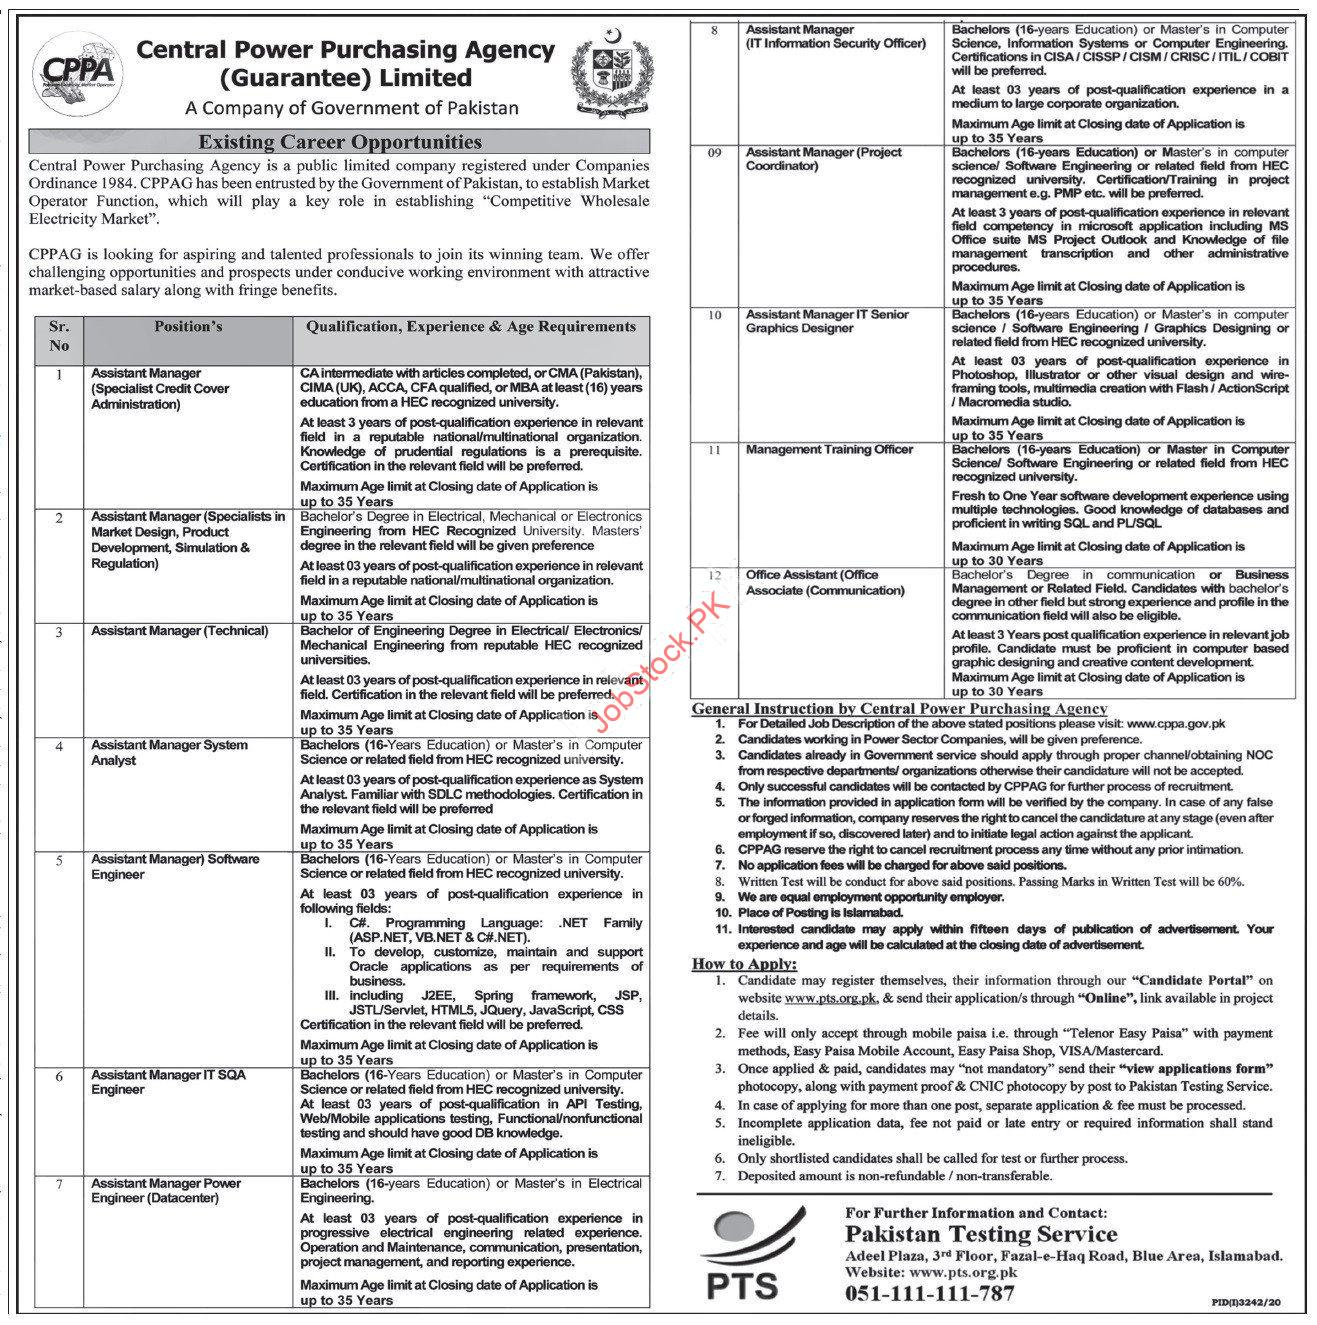 Cppa Central Power Purchasing Agency Islamabad Jobs 2021 Latest